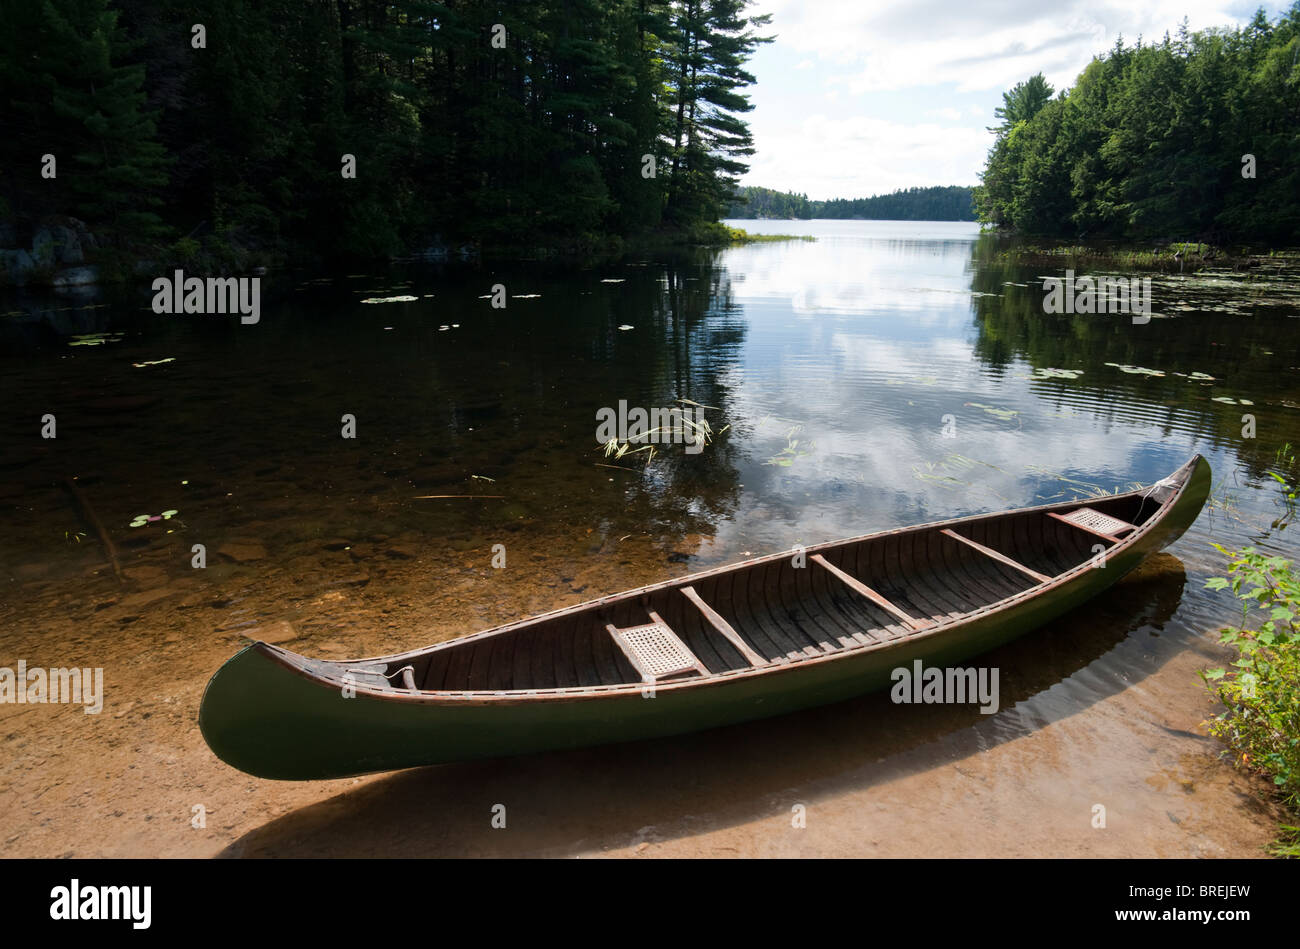 A traditional wooden cedar strip canoe at the edge of a portage in Killarney Provincial Park. - Stock Image